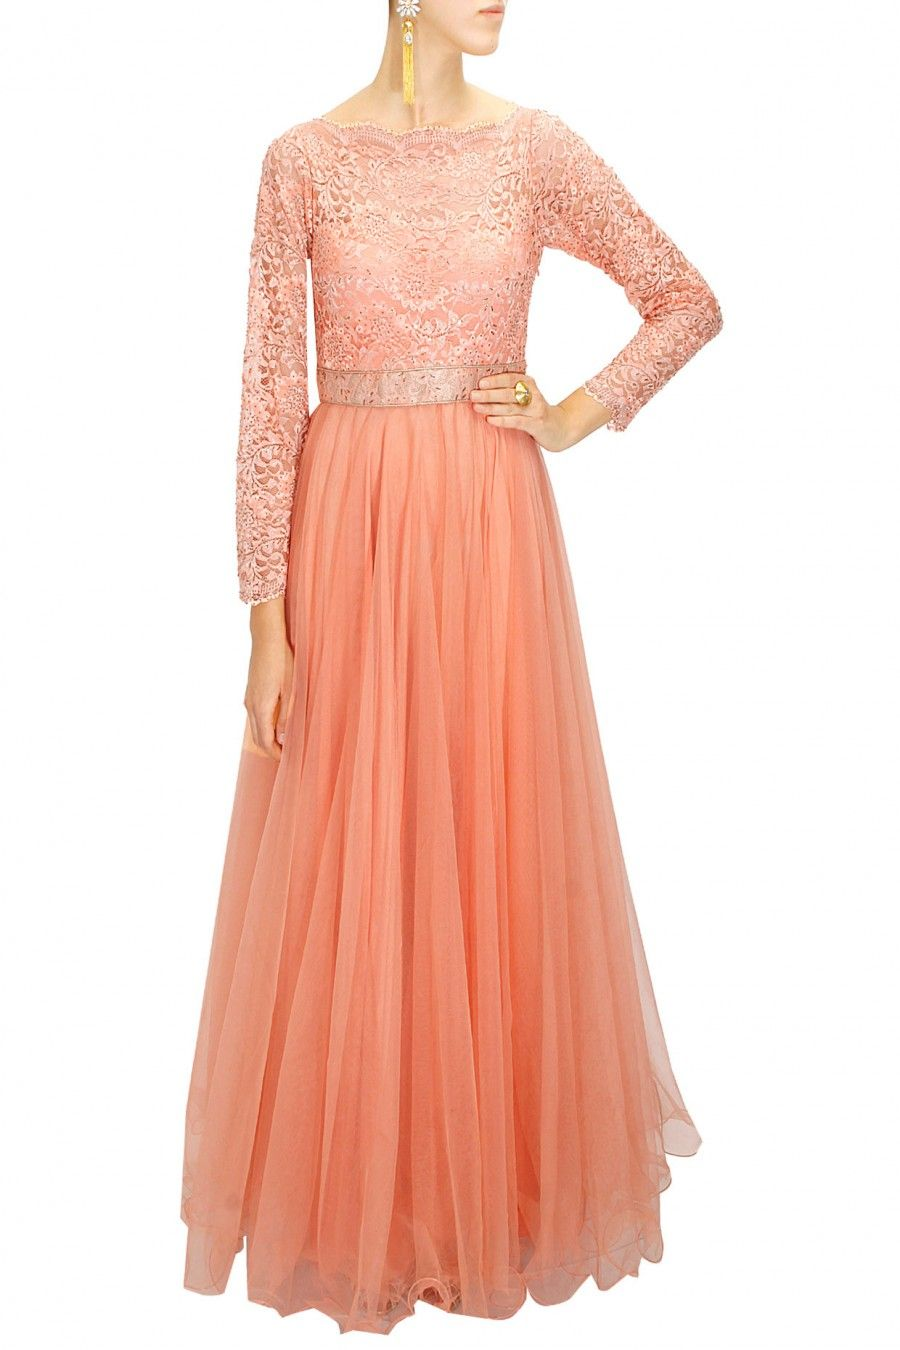 Peach crystal embellished chantilly lace gown by Diva'ni ...